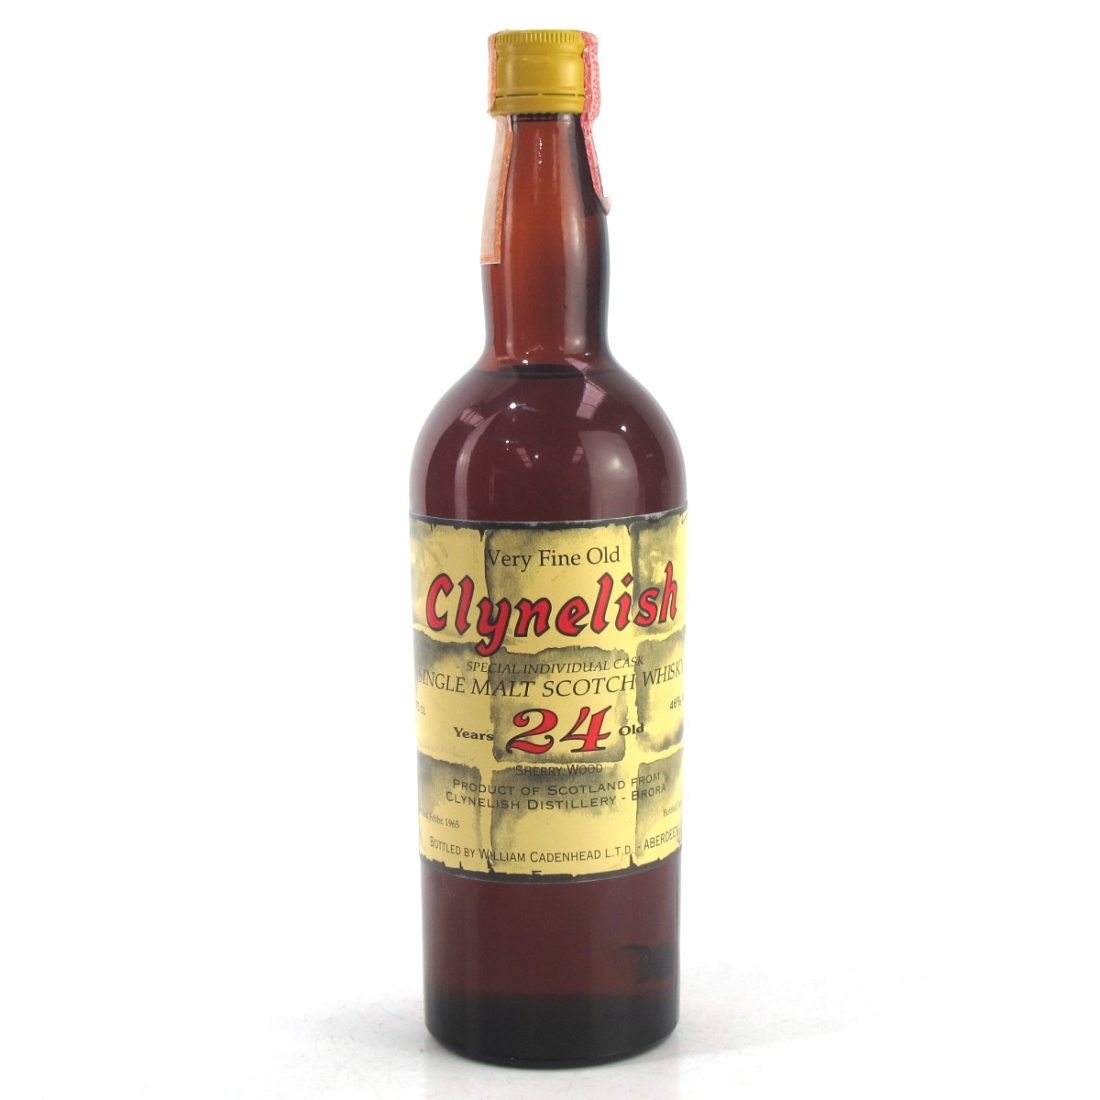 Clynelish 1965 Sestante 'Brick Label' 24 Years Old